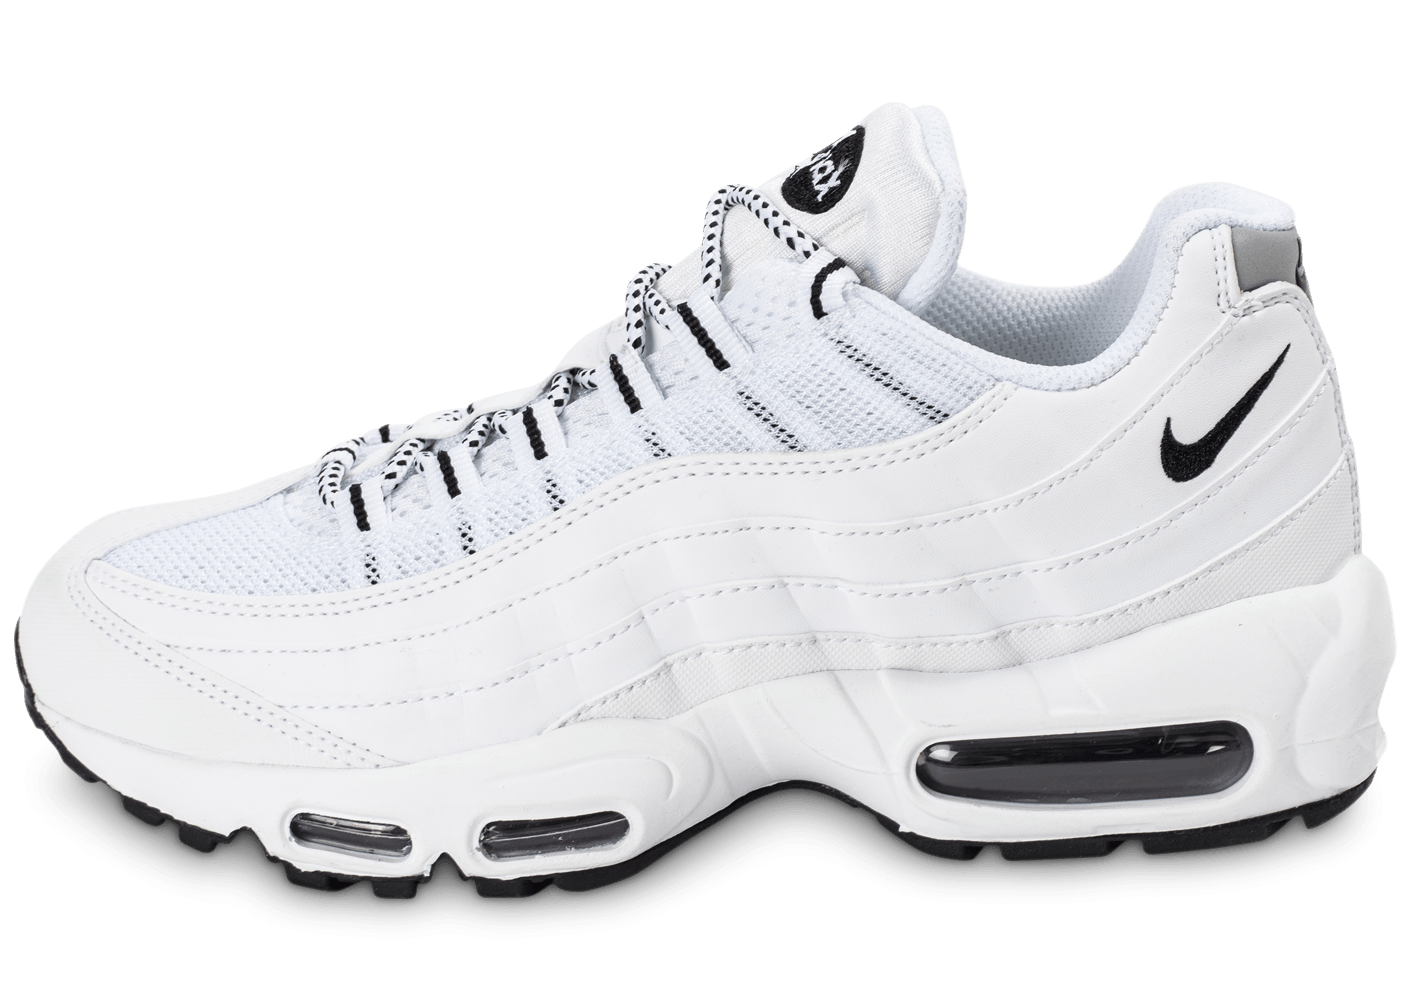 the best attitude f186e 4a49b Nike Air Max 95 Premium blanche - Chaussures Baskets homme - Chausport